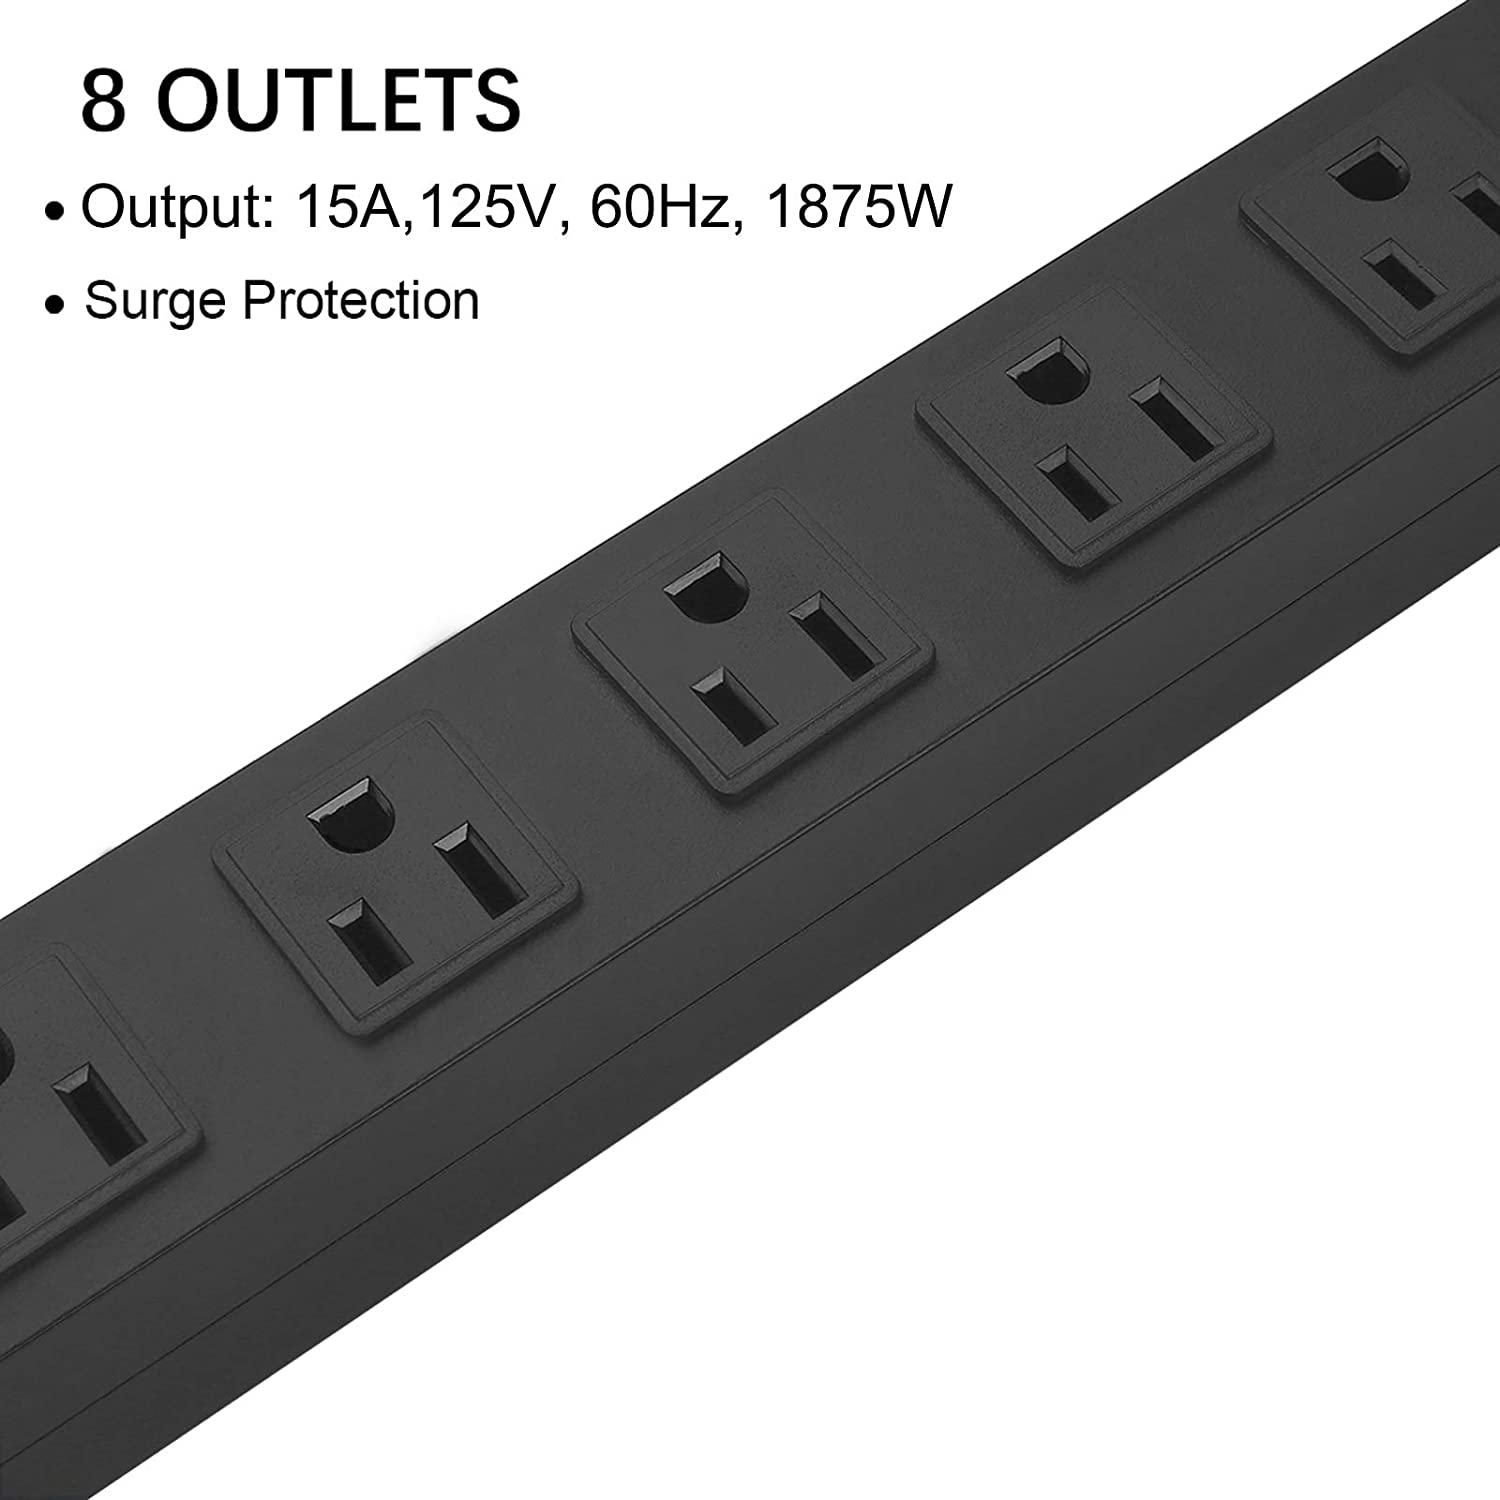 Metal 8 Outlet Mountable Power Strip, Wall Mount Outlet Power Strip Heavy Duty, Wide Spaced Commercial Shop Power Strip with Switch, 15A 125V 1875W, 6 FT SJT 14AWG Power Cord (6FT)